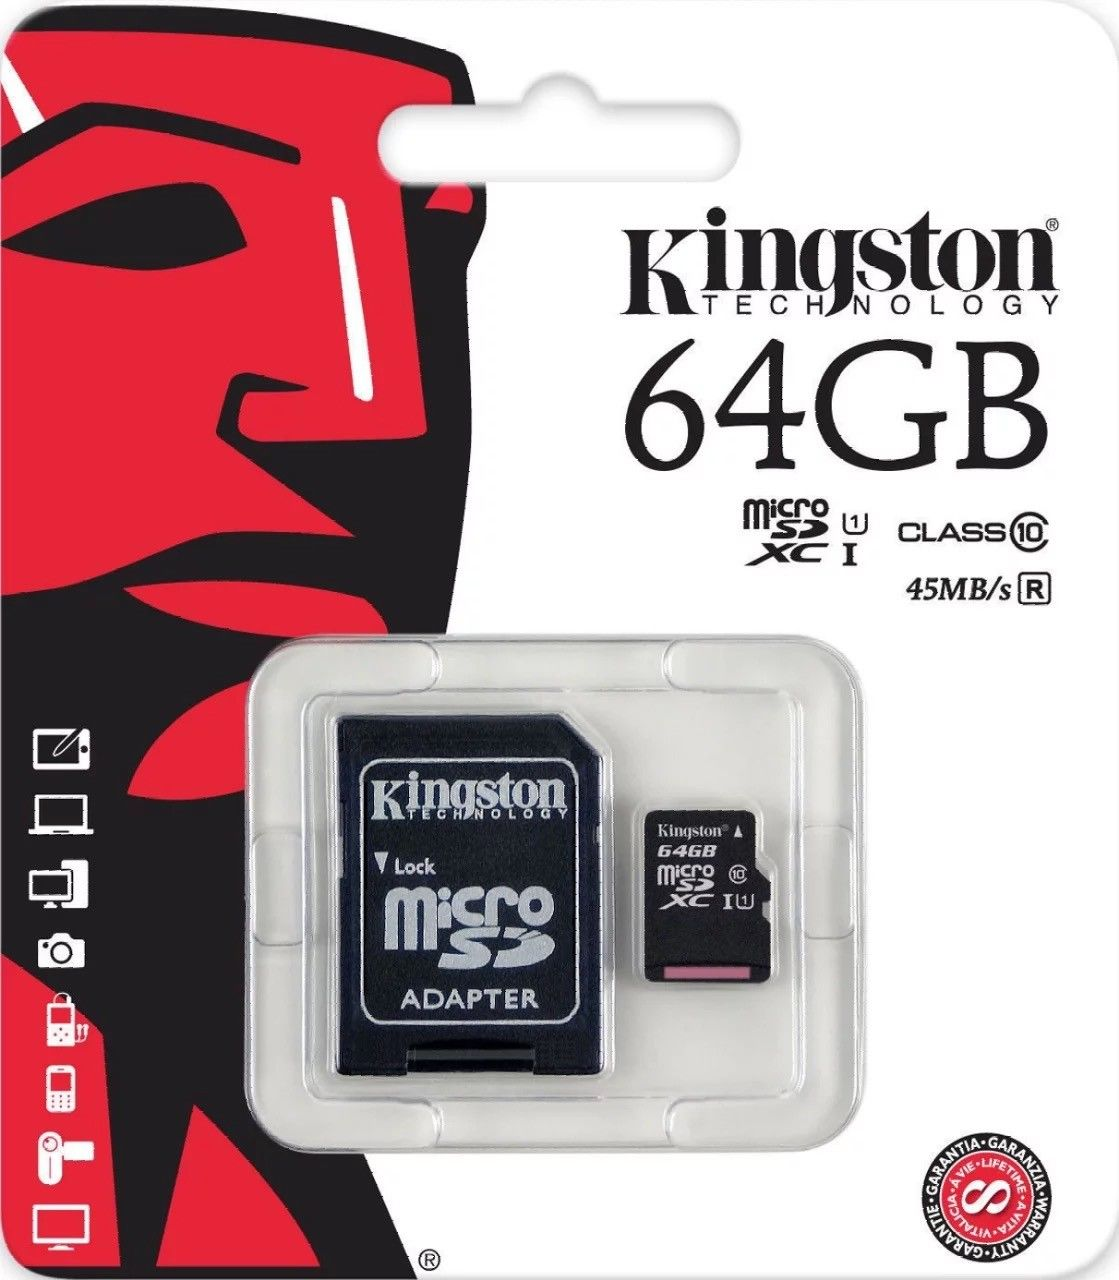 80MBs Works with Kingston Professional Kingston 64GB for Spice Mobile Stellar 519 MicroSDXC Card Custom Verified by SanFlash.